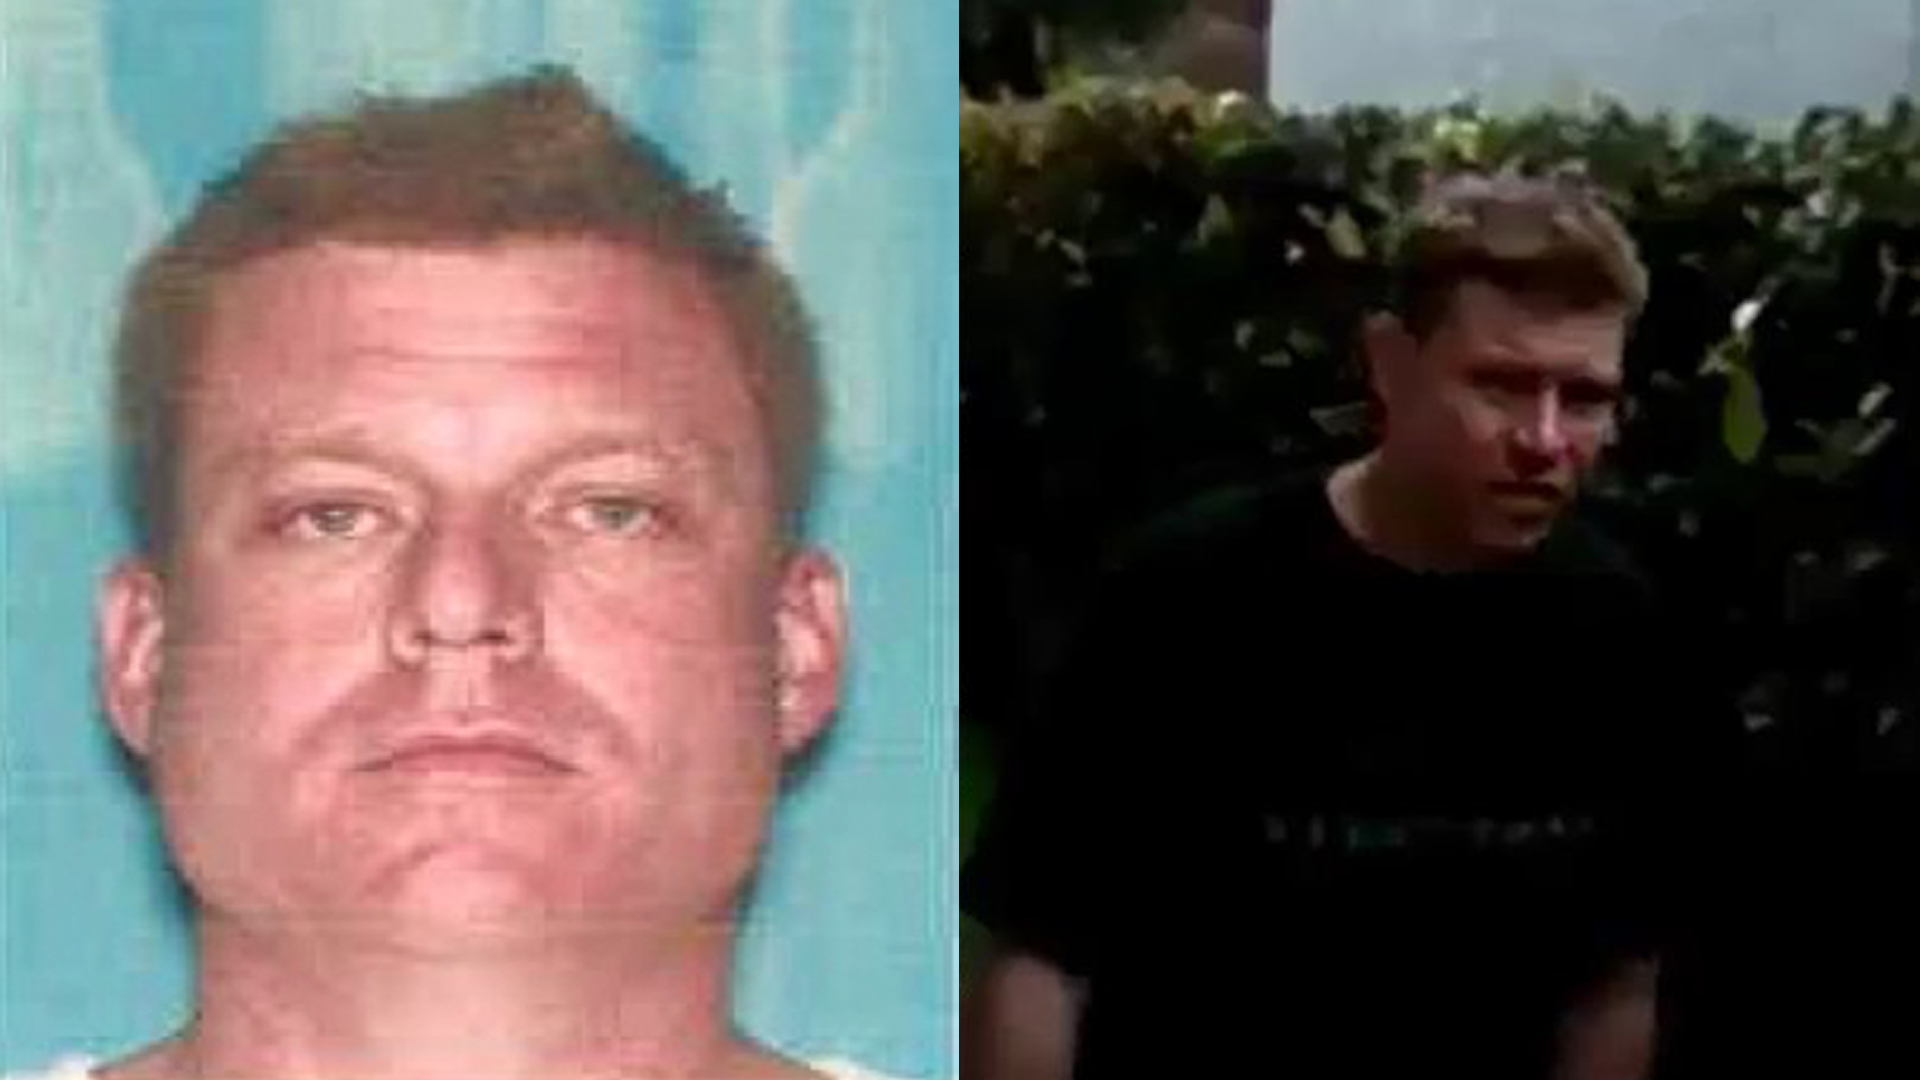 Brett Patrick Rogers, 44, is shown in photos and images released by LAPD on May 3, 2018.